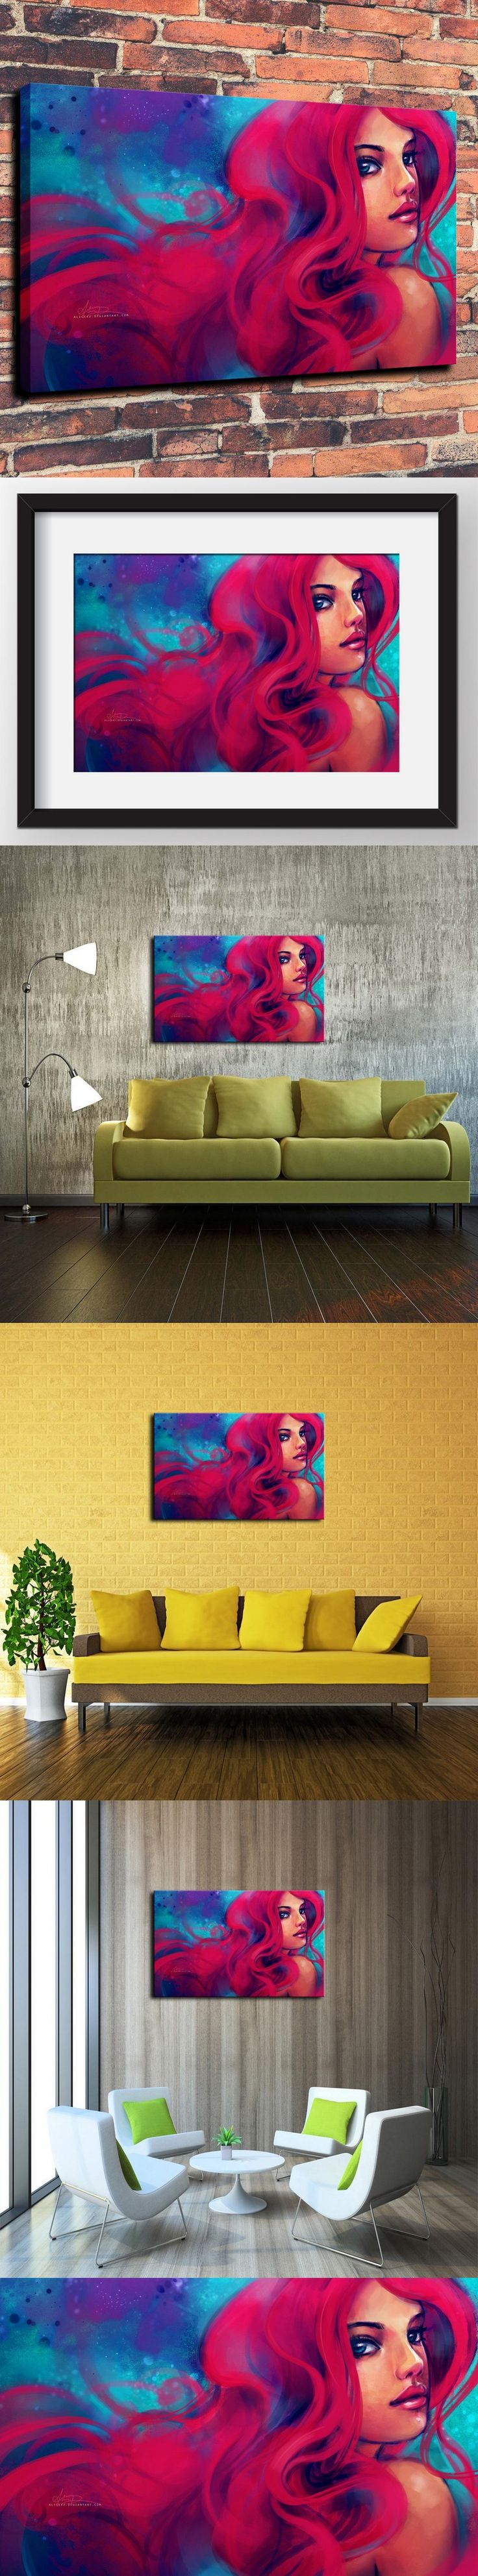 Canvas Prints Wall Art Decorative Painting Western Home Decor Which The Little Mermaid Ariel Girl Alicexz Art( No Framed ) $30